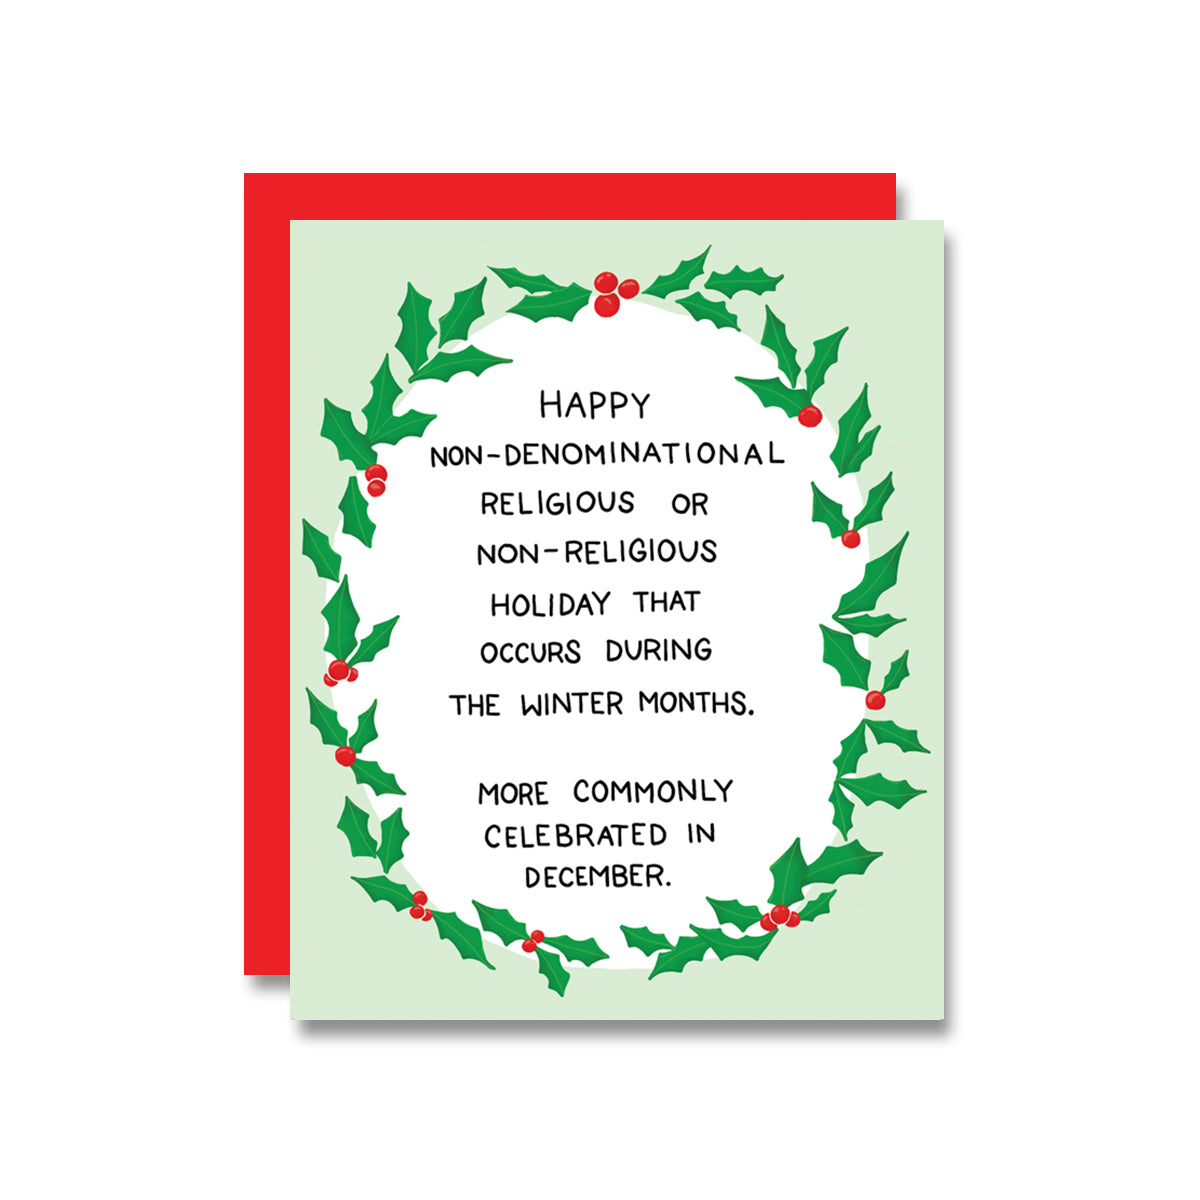 Non-Denom Holiday, Card